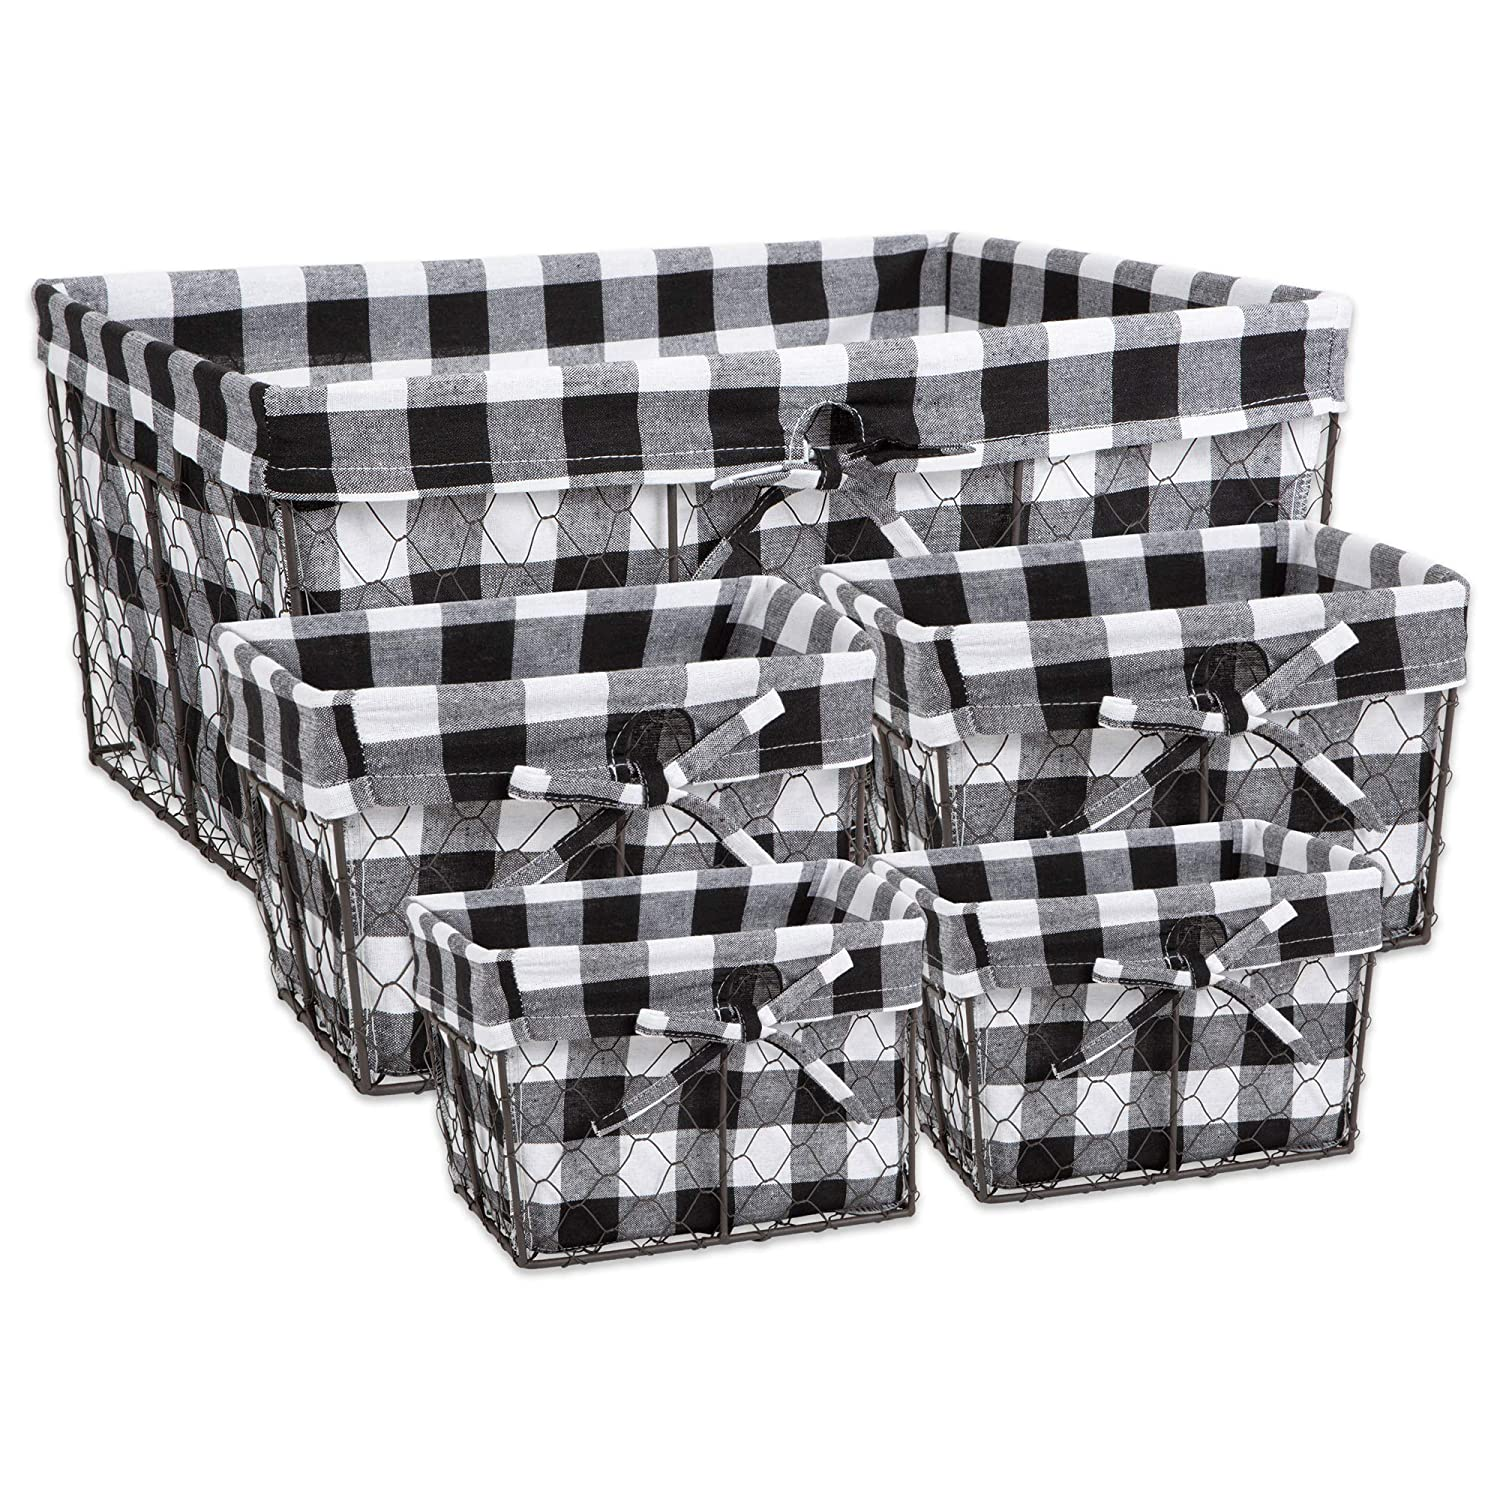 DII Z02319 Vintage Food Safe Metal Chicken Wire Storage Baskets with Removable Fabric Liner for Home Décor or Kitchen Use Set of 5 Black & White Check